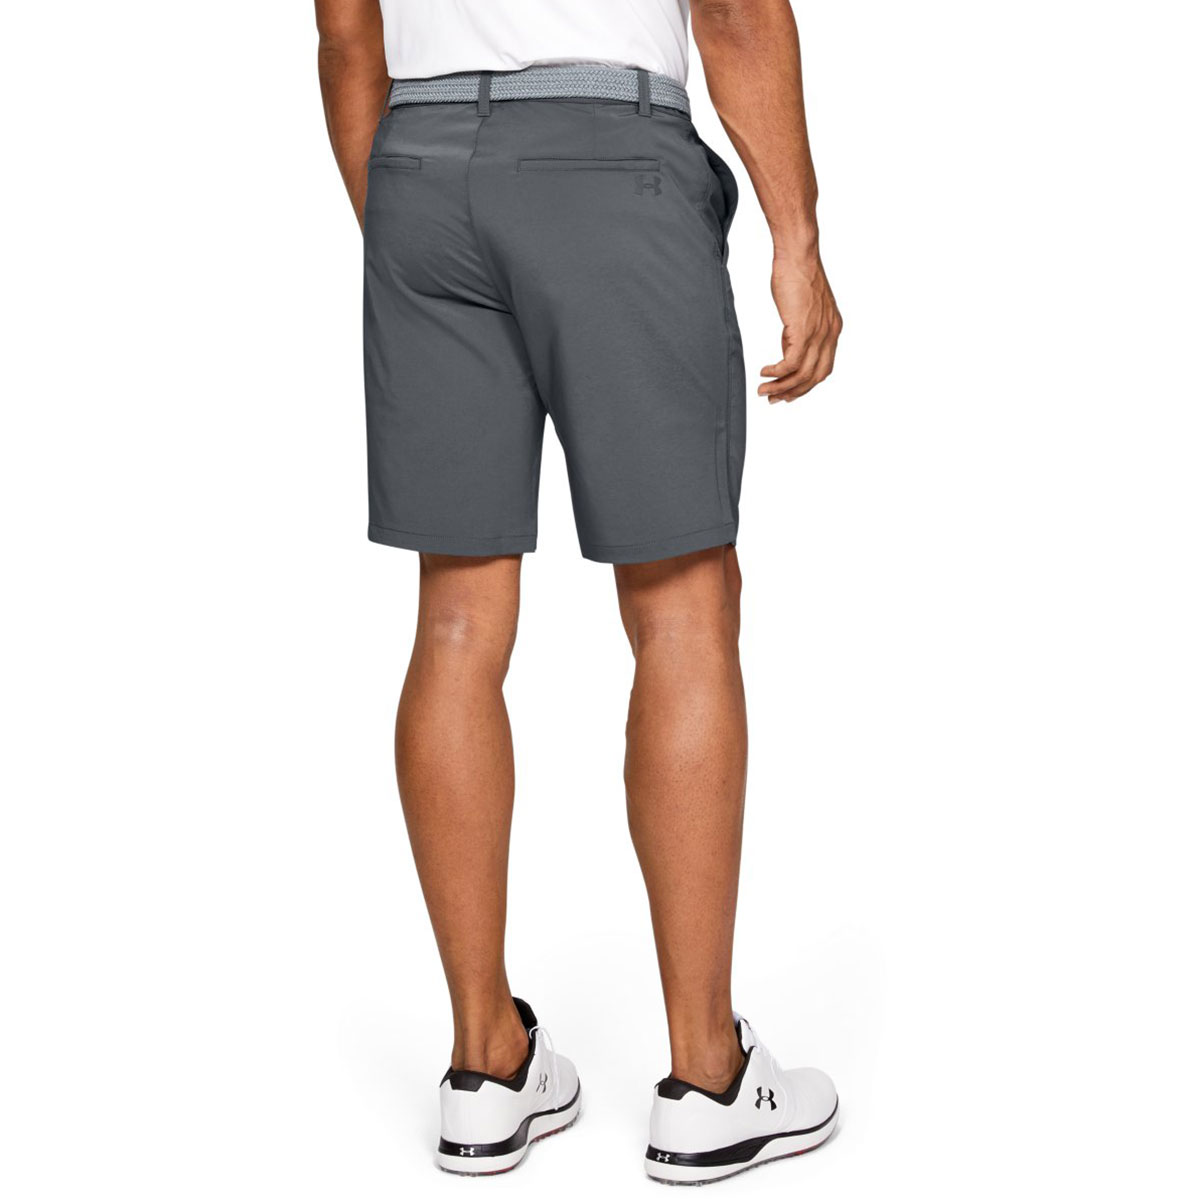 Under-Armour-Mens-EU-Tech-Stretch-Soft-Fitted-Golf-Shorts thumbnail 15